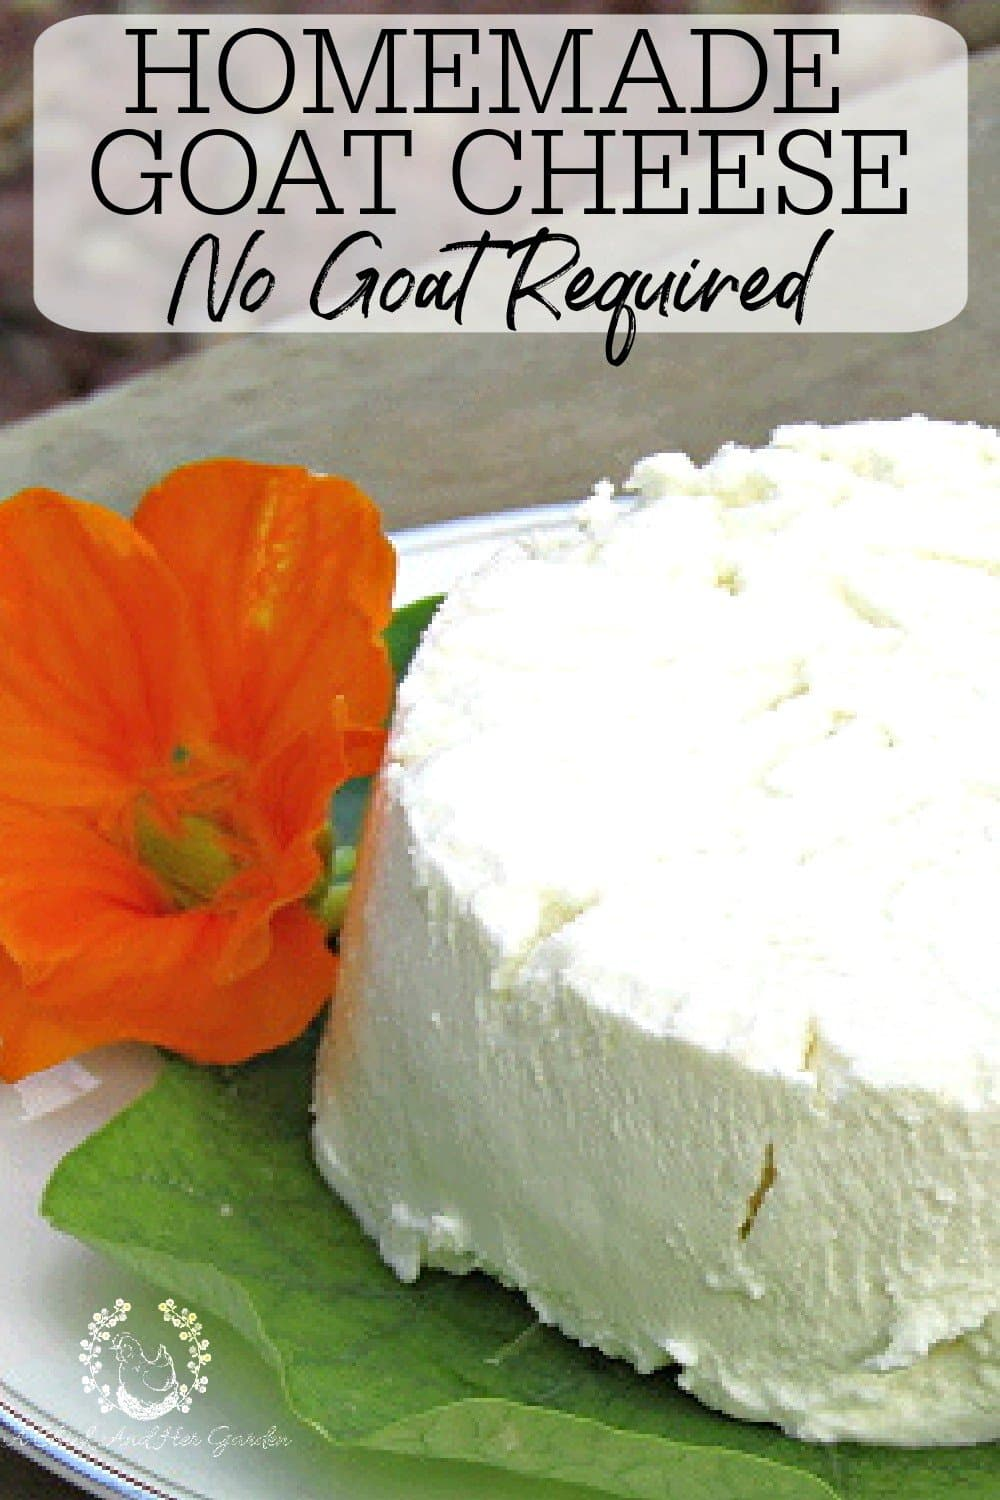 I've always wanted to make cheese, but was so intimidated by it. Homemade goat cheese was perfect to start with! It was so easy! It turned out perfect and now we always have some on hand! Goat cheese can be used for so many different things that I end up making it almost weekly! #goatcheese #cheesemaking #fromscratchcooking #fromscratchrecipes #chevre #achickandhergarden